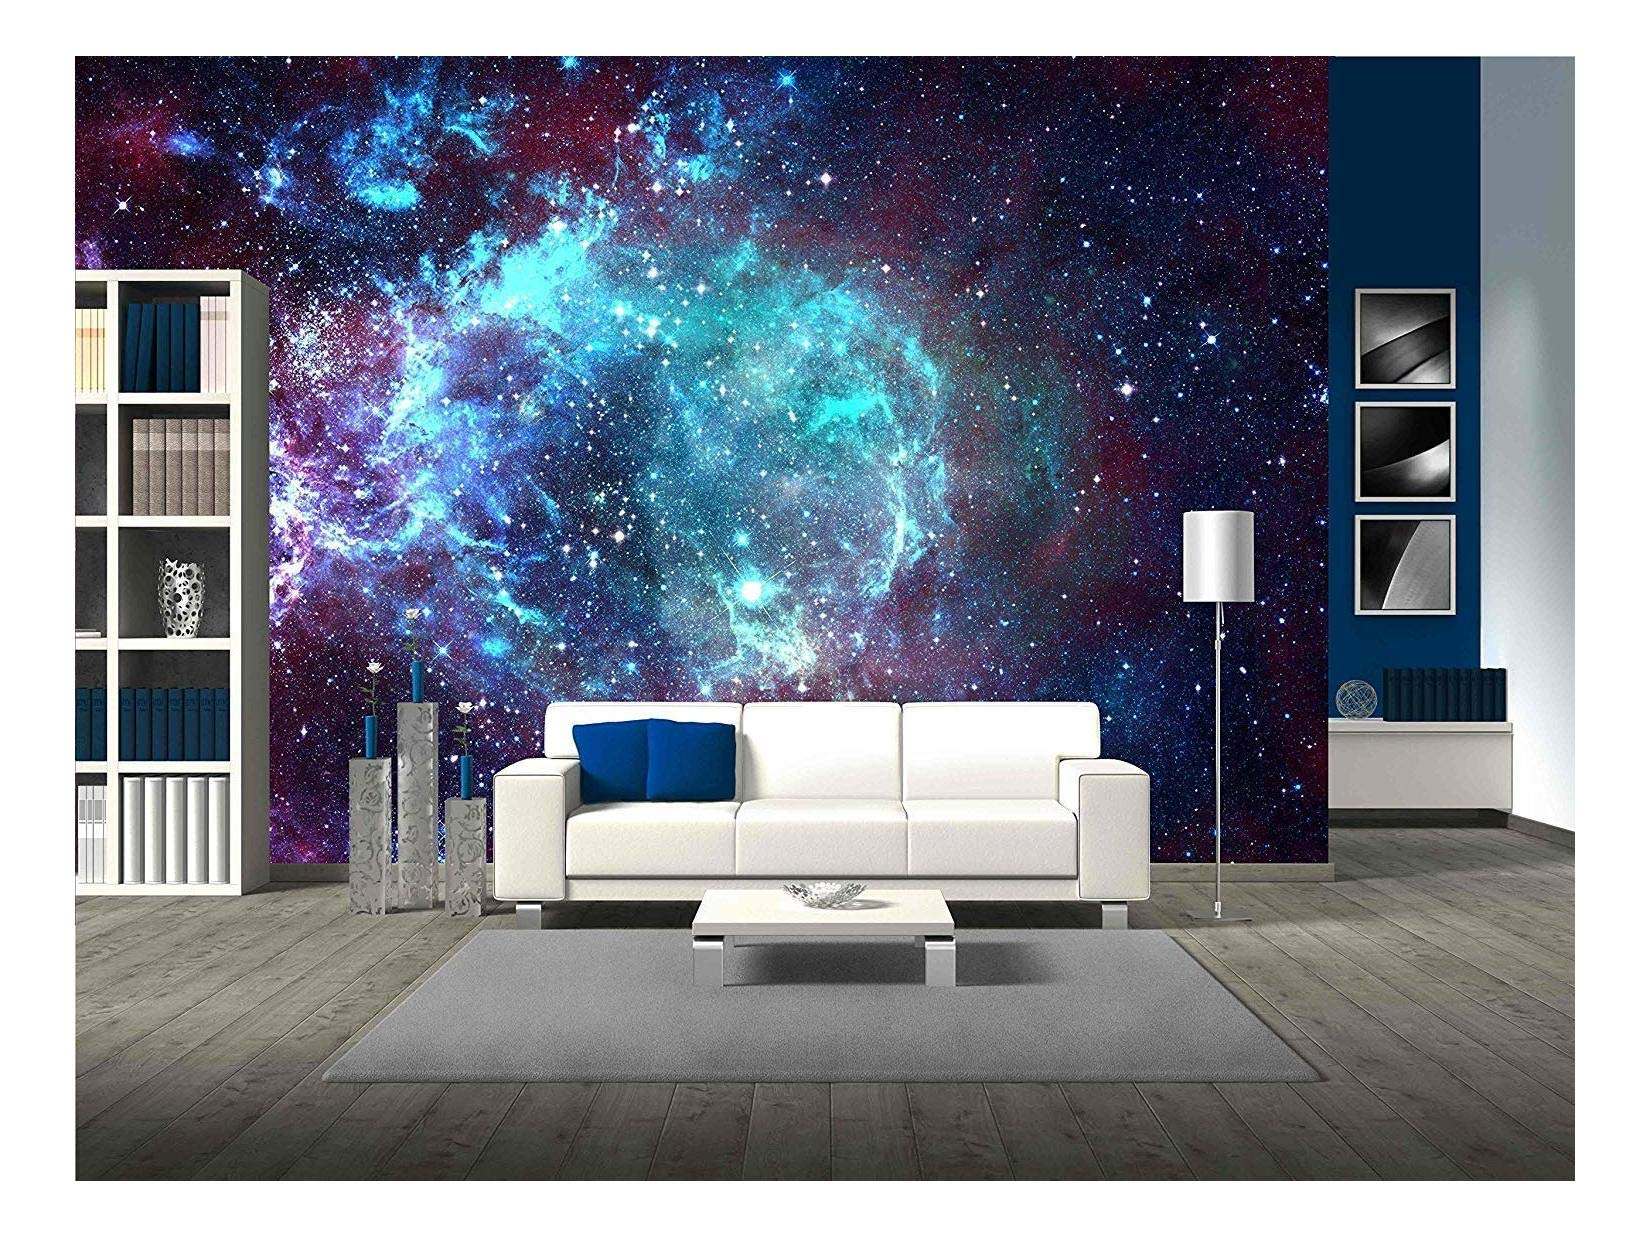 wall26 - Star Field in Space a Nebulae and a Gas Congestion - Removable Wall Mural | Self-Adhesive Large Wallpaper - 100x144 inches by wall26